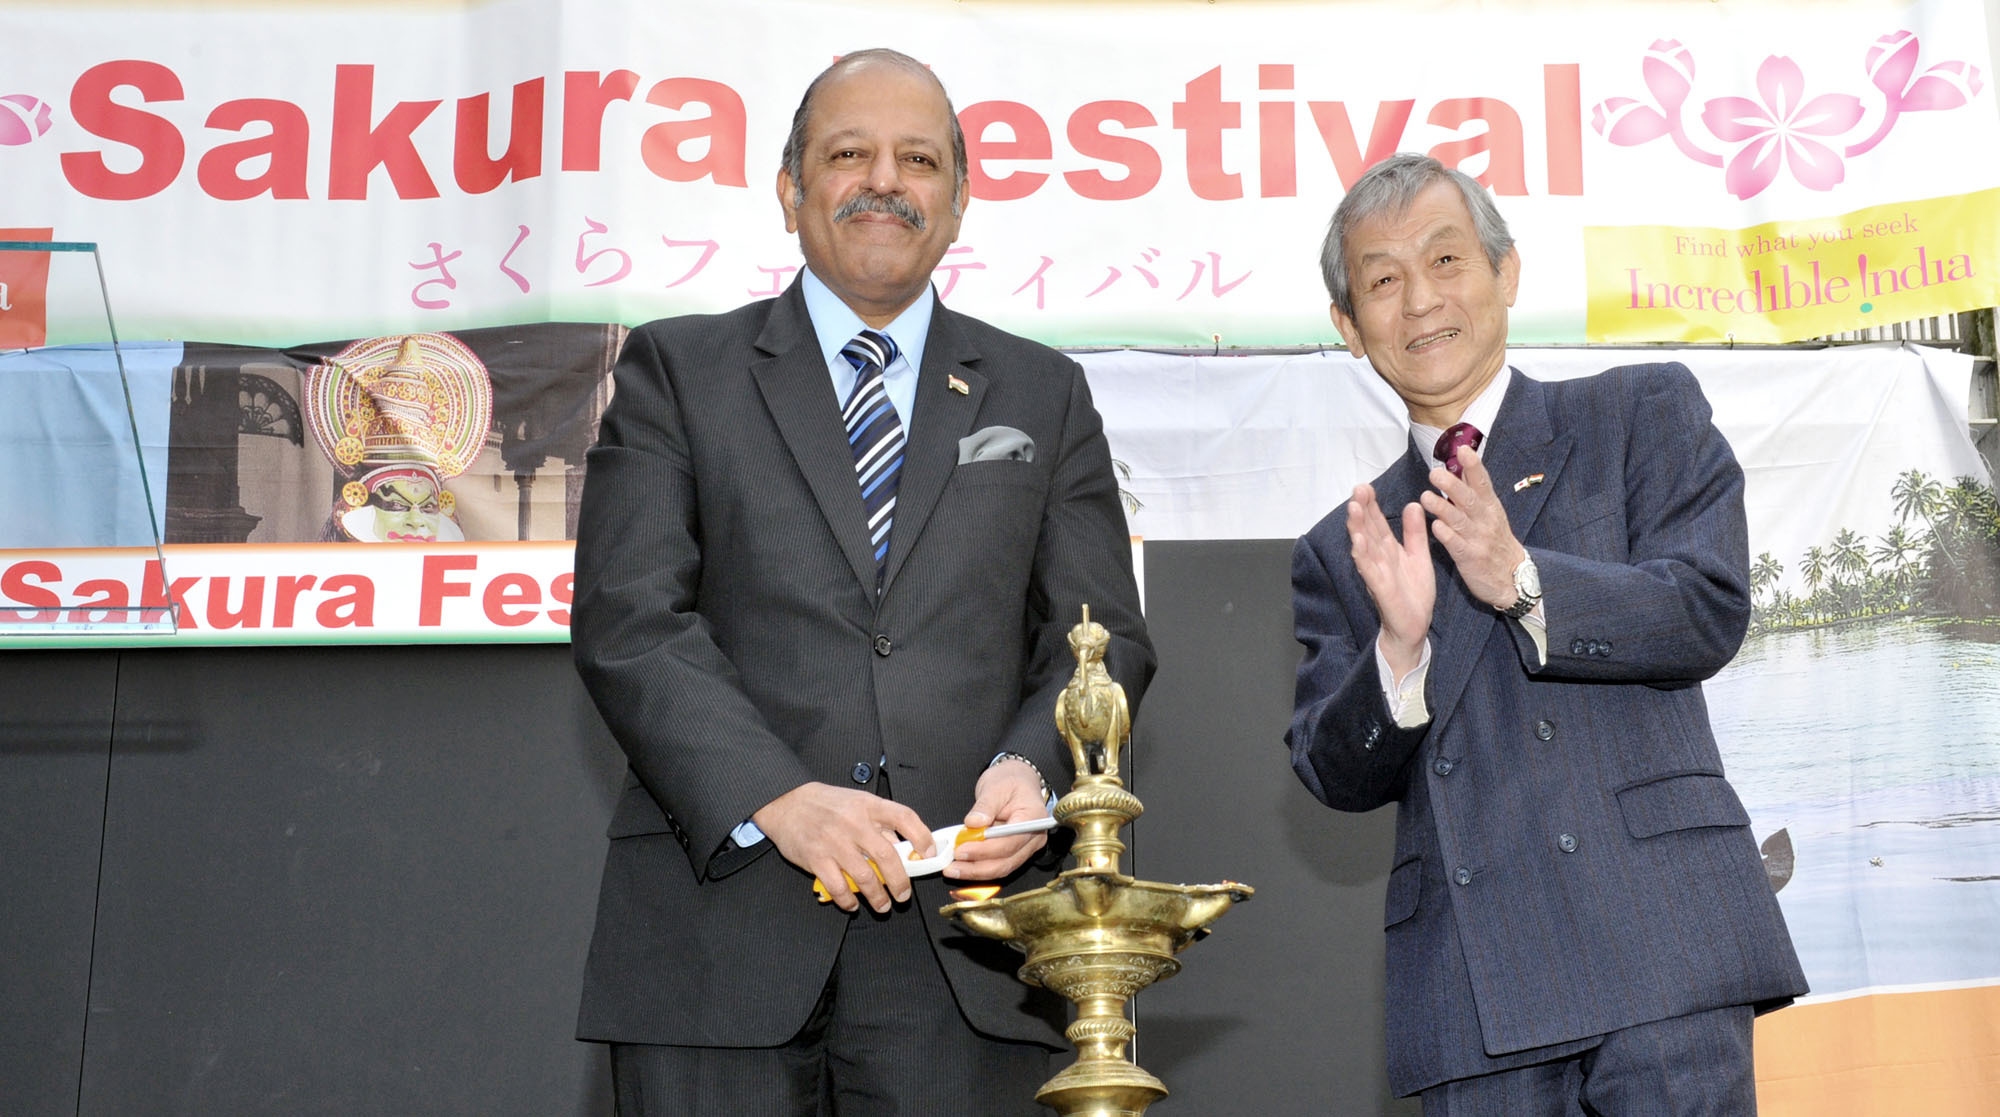 Indian Ambassador Sujan R. Chinoy (left) lights a traditional oil lamp during the opening ceremony of the Sakura Festival 2016, as President of the Japan-India Association Hiroshi Hirabayashi (right) applauds at the embassy in Tokyo on March 25. The sakura festival at the embassy showcases Indian cultural performances, food and handicrafts. | YOSHIAKI MIURA